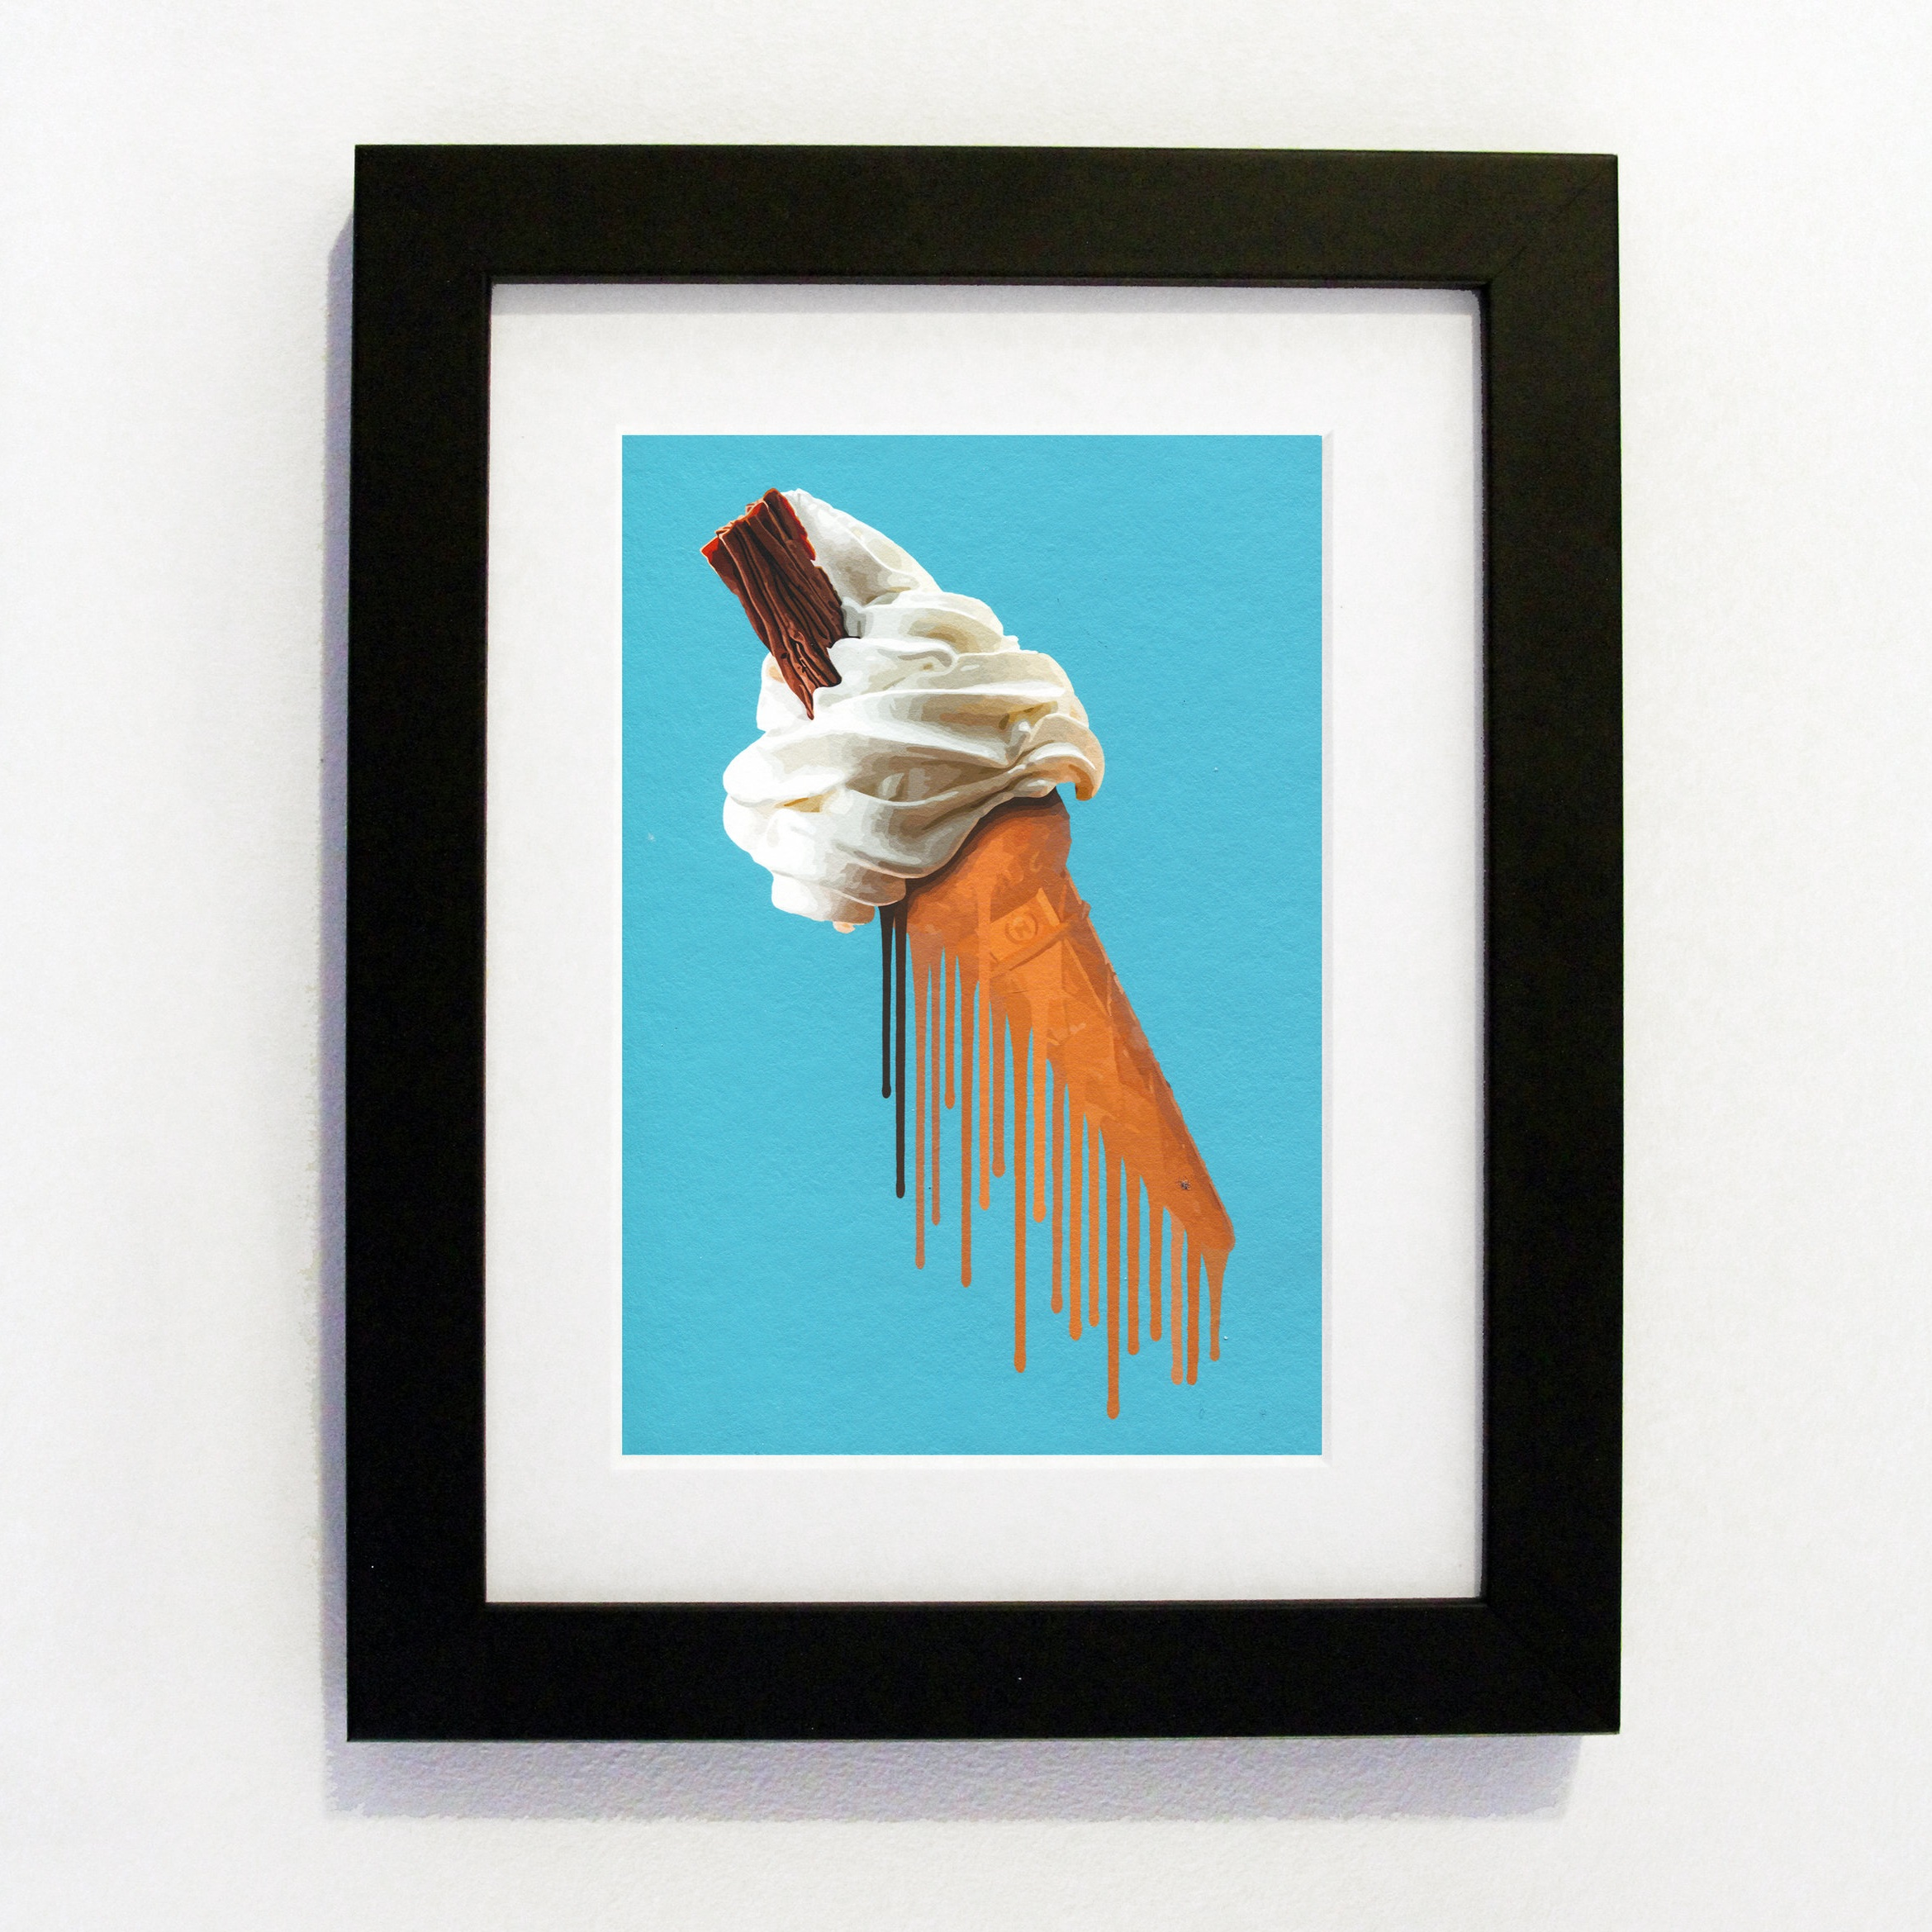 Ice+Cream+Black+Frame.jpg